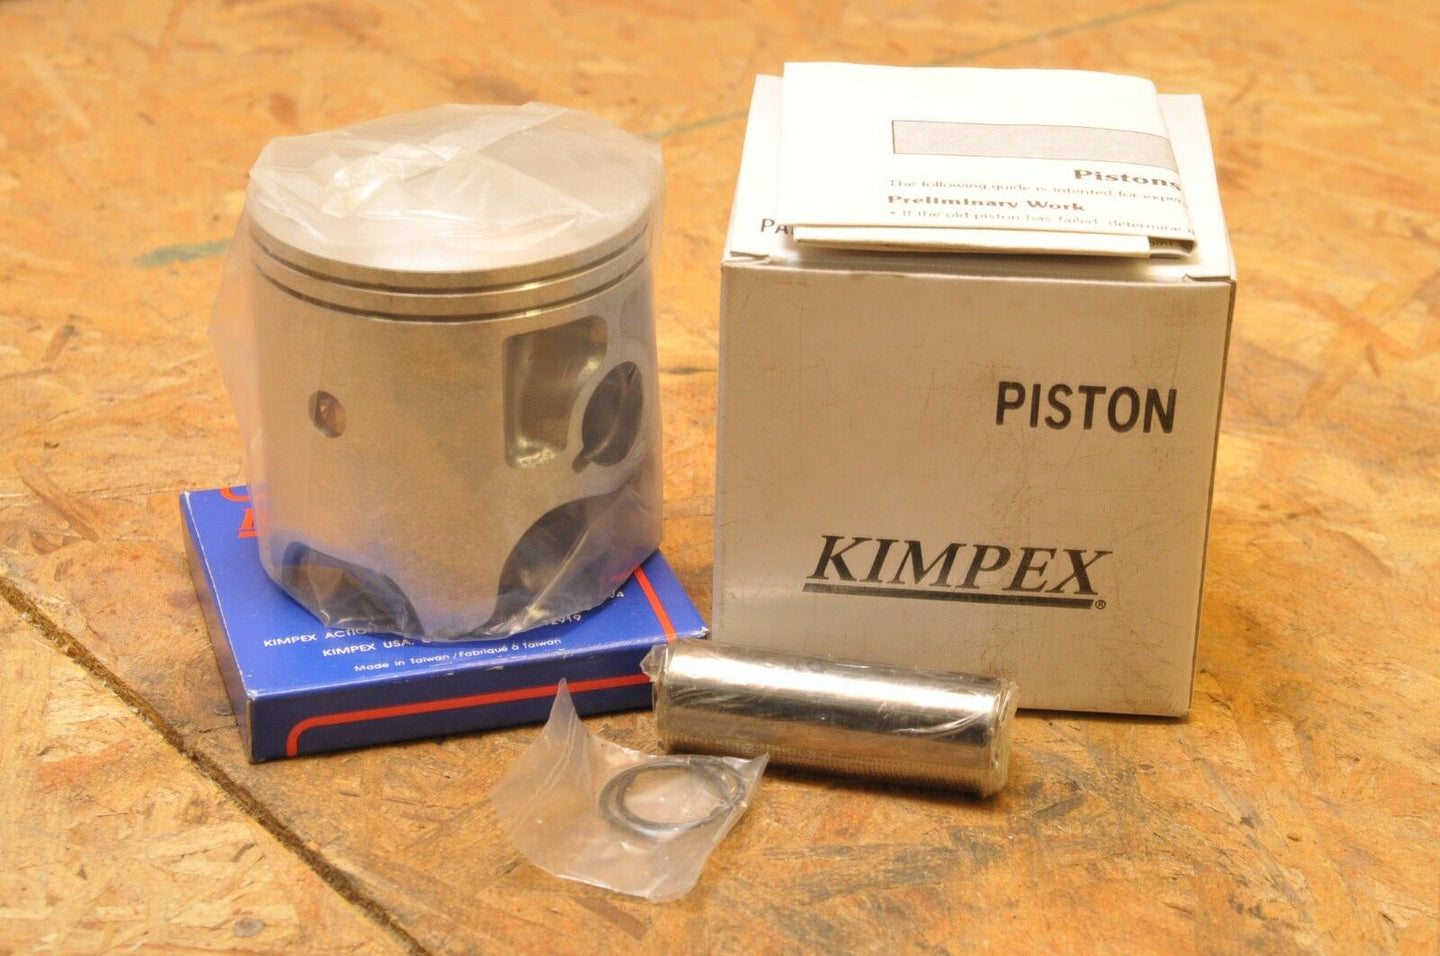 NEW NOS KIMPEX PISTON KIT 09-748 MOTO SKI-DOO 340 TNT OLYMPIQUE FUTURA EVEREST R